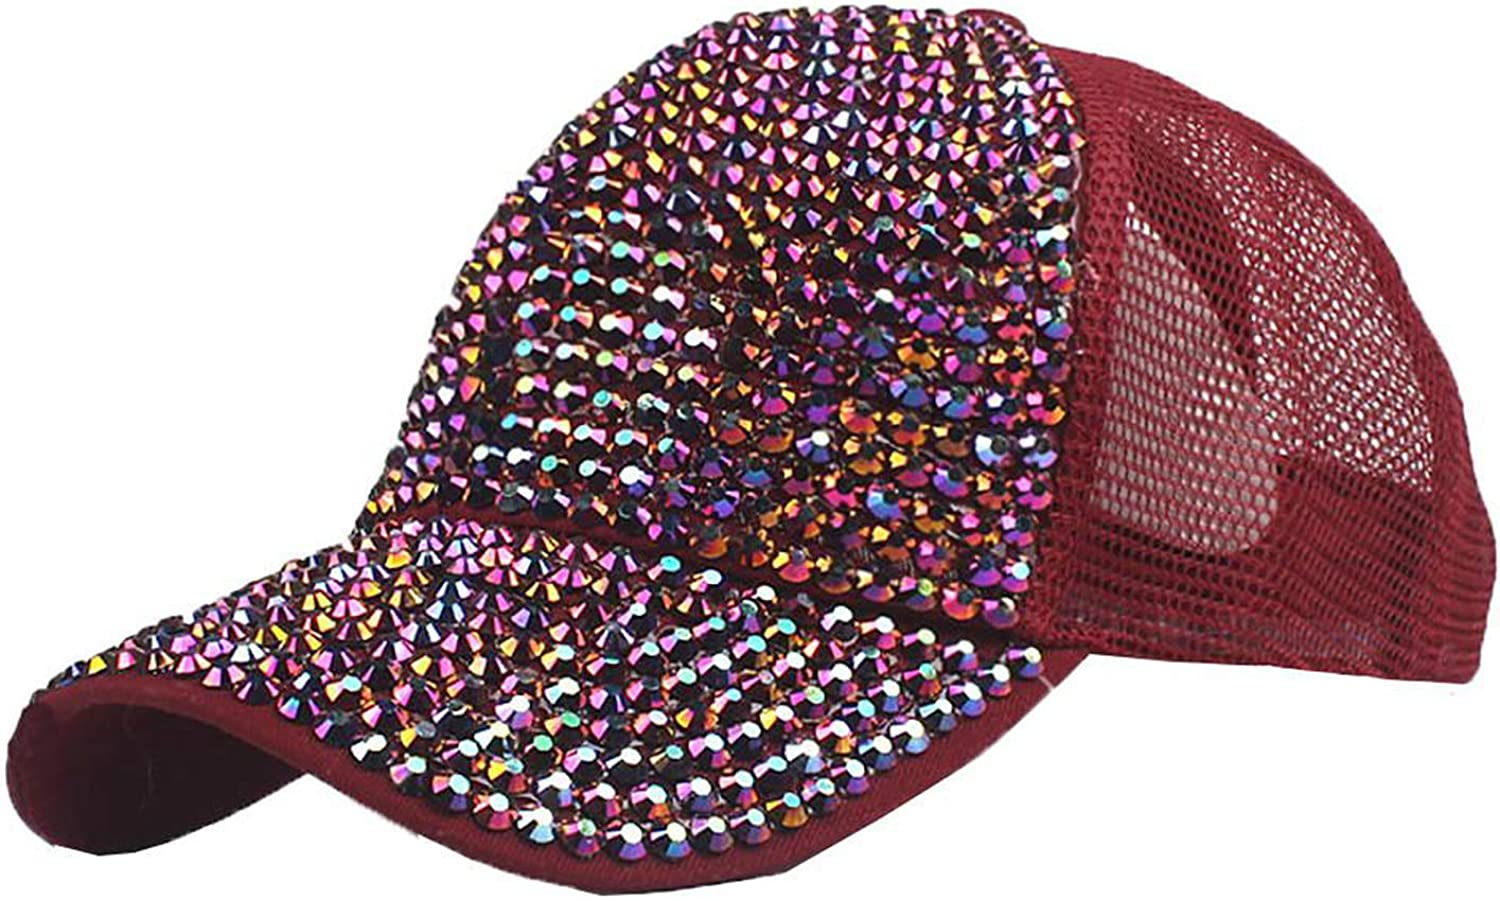 HiiWorld Glitter Baseball Cap Women Baseball Cap Girls Snapback Caps Summer 2019 Fashion Mesh Hats